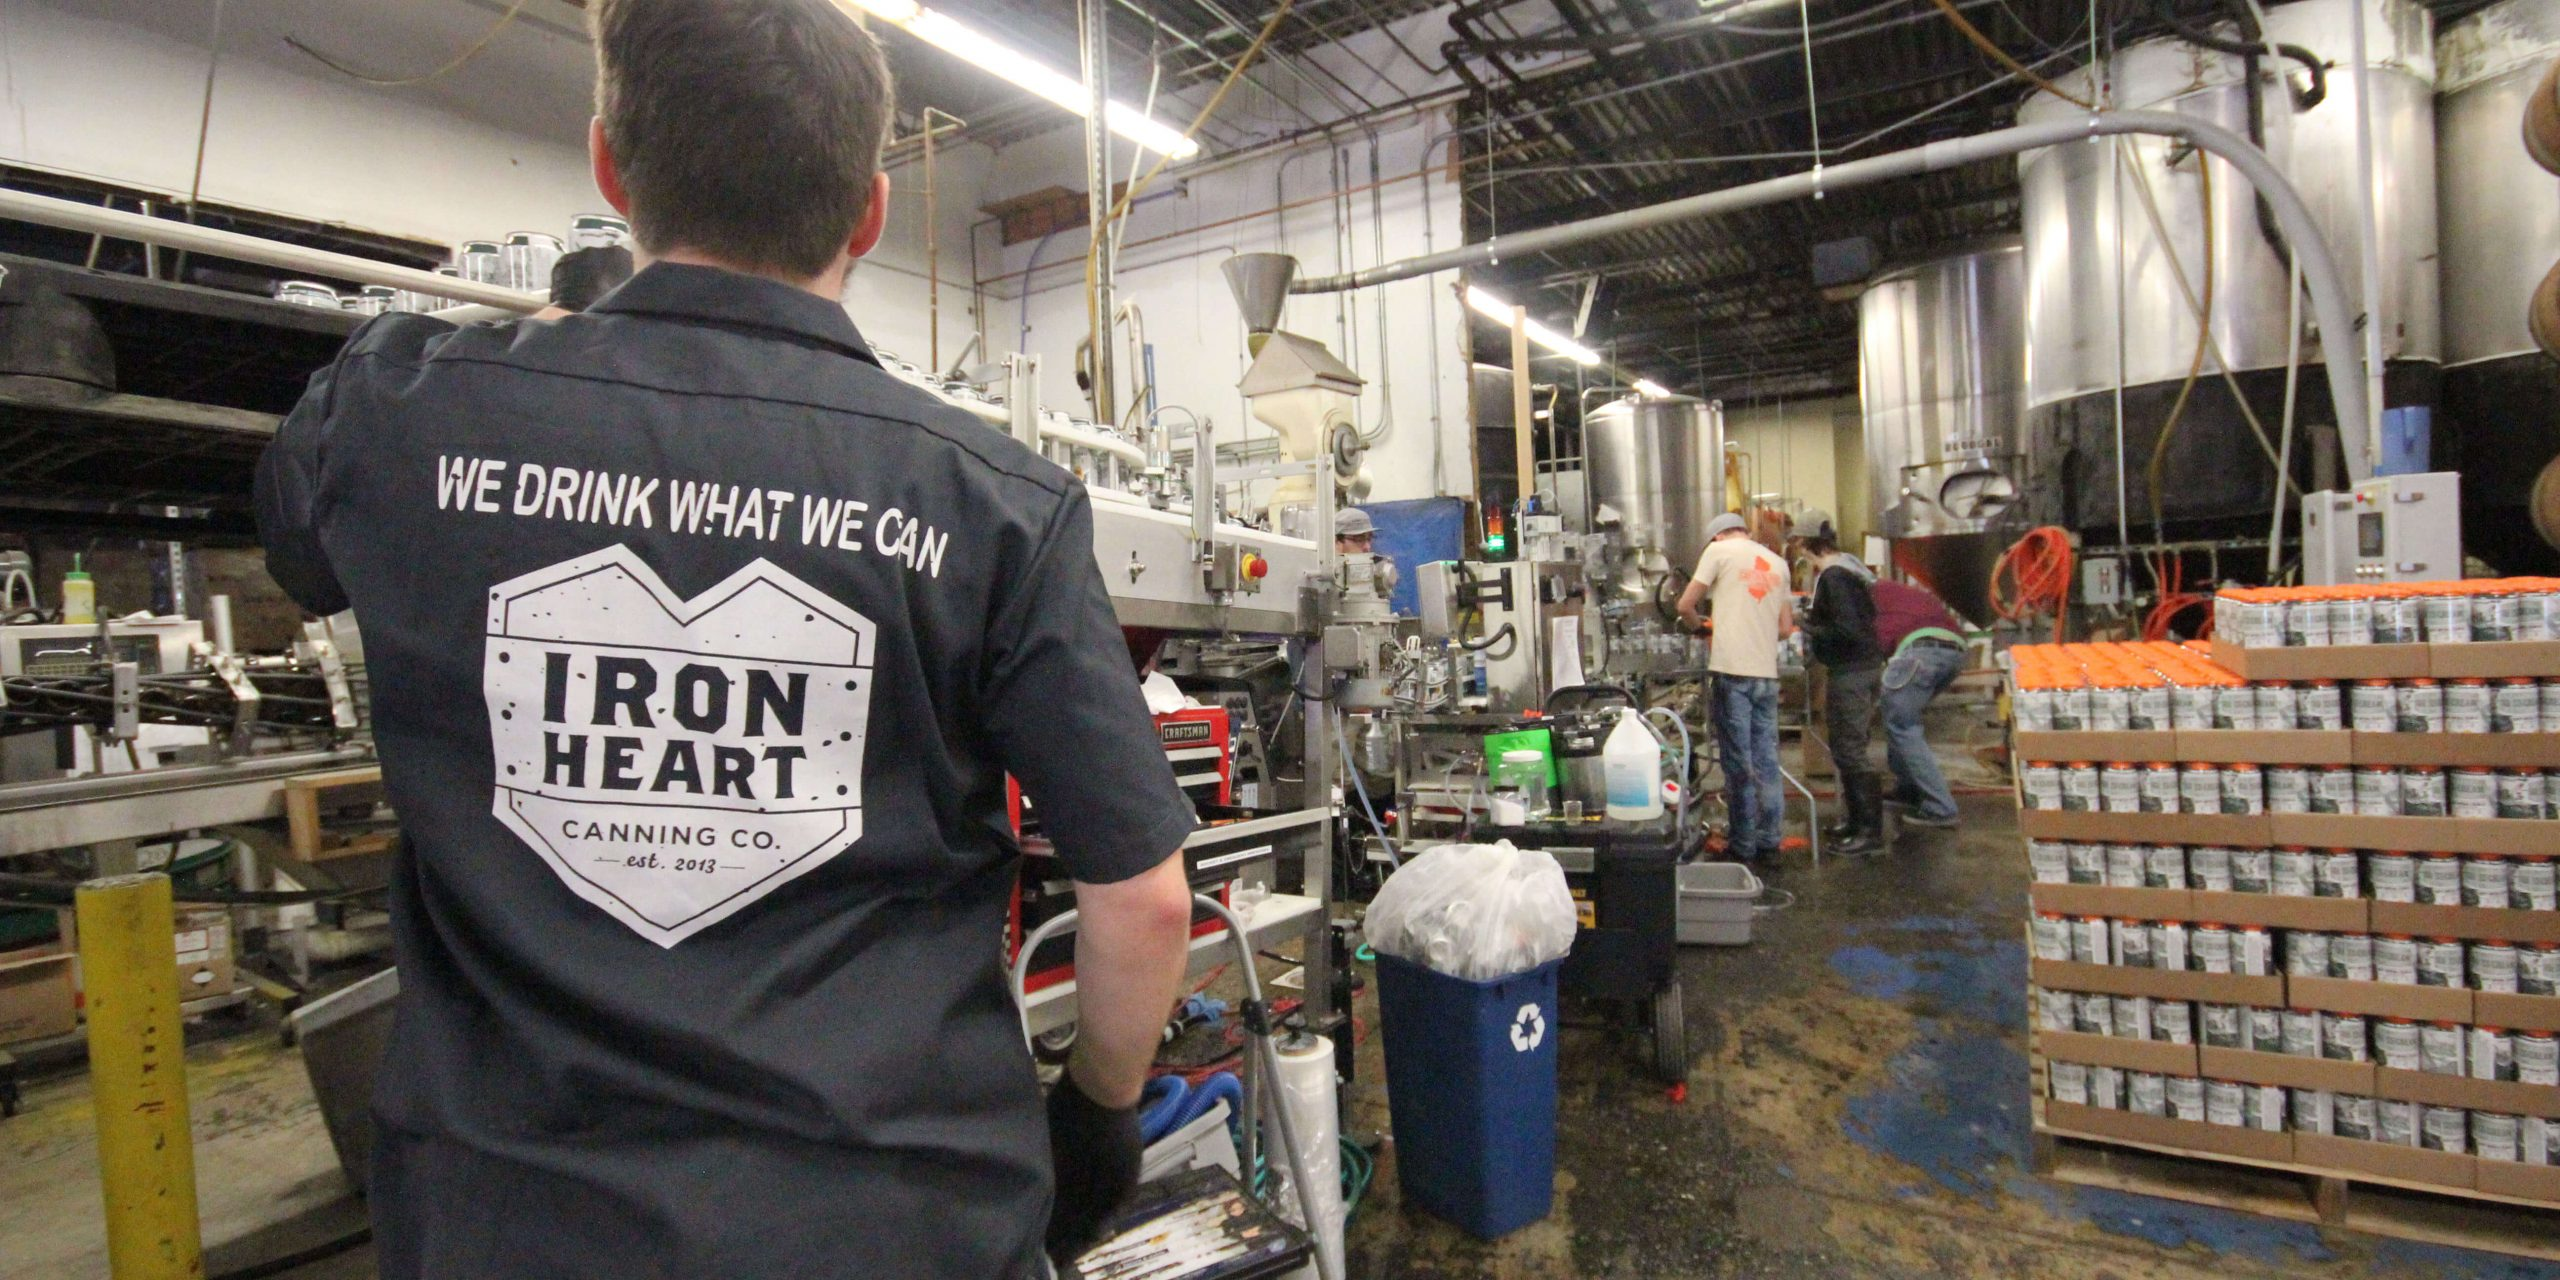 Iron Heart Canning at work